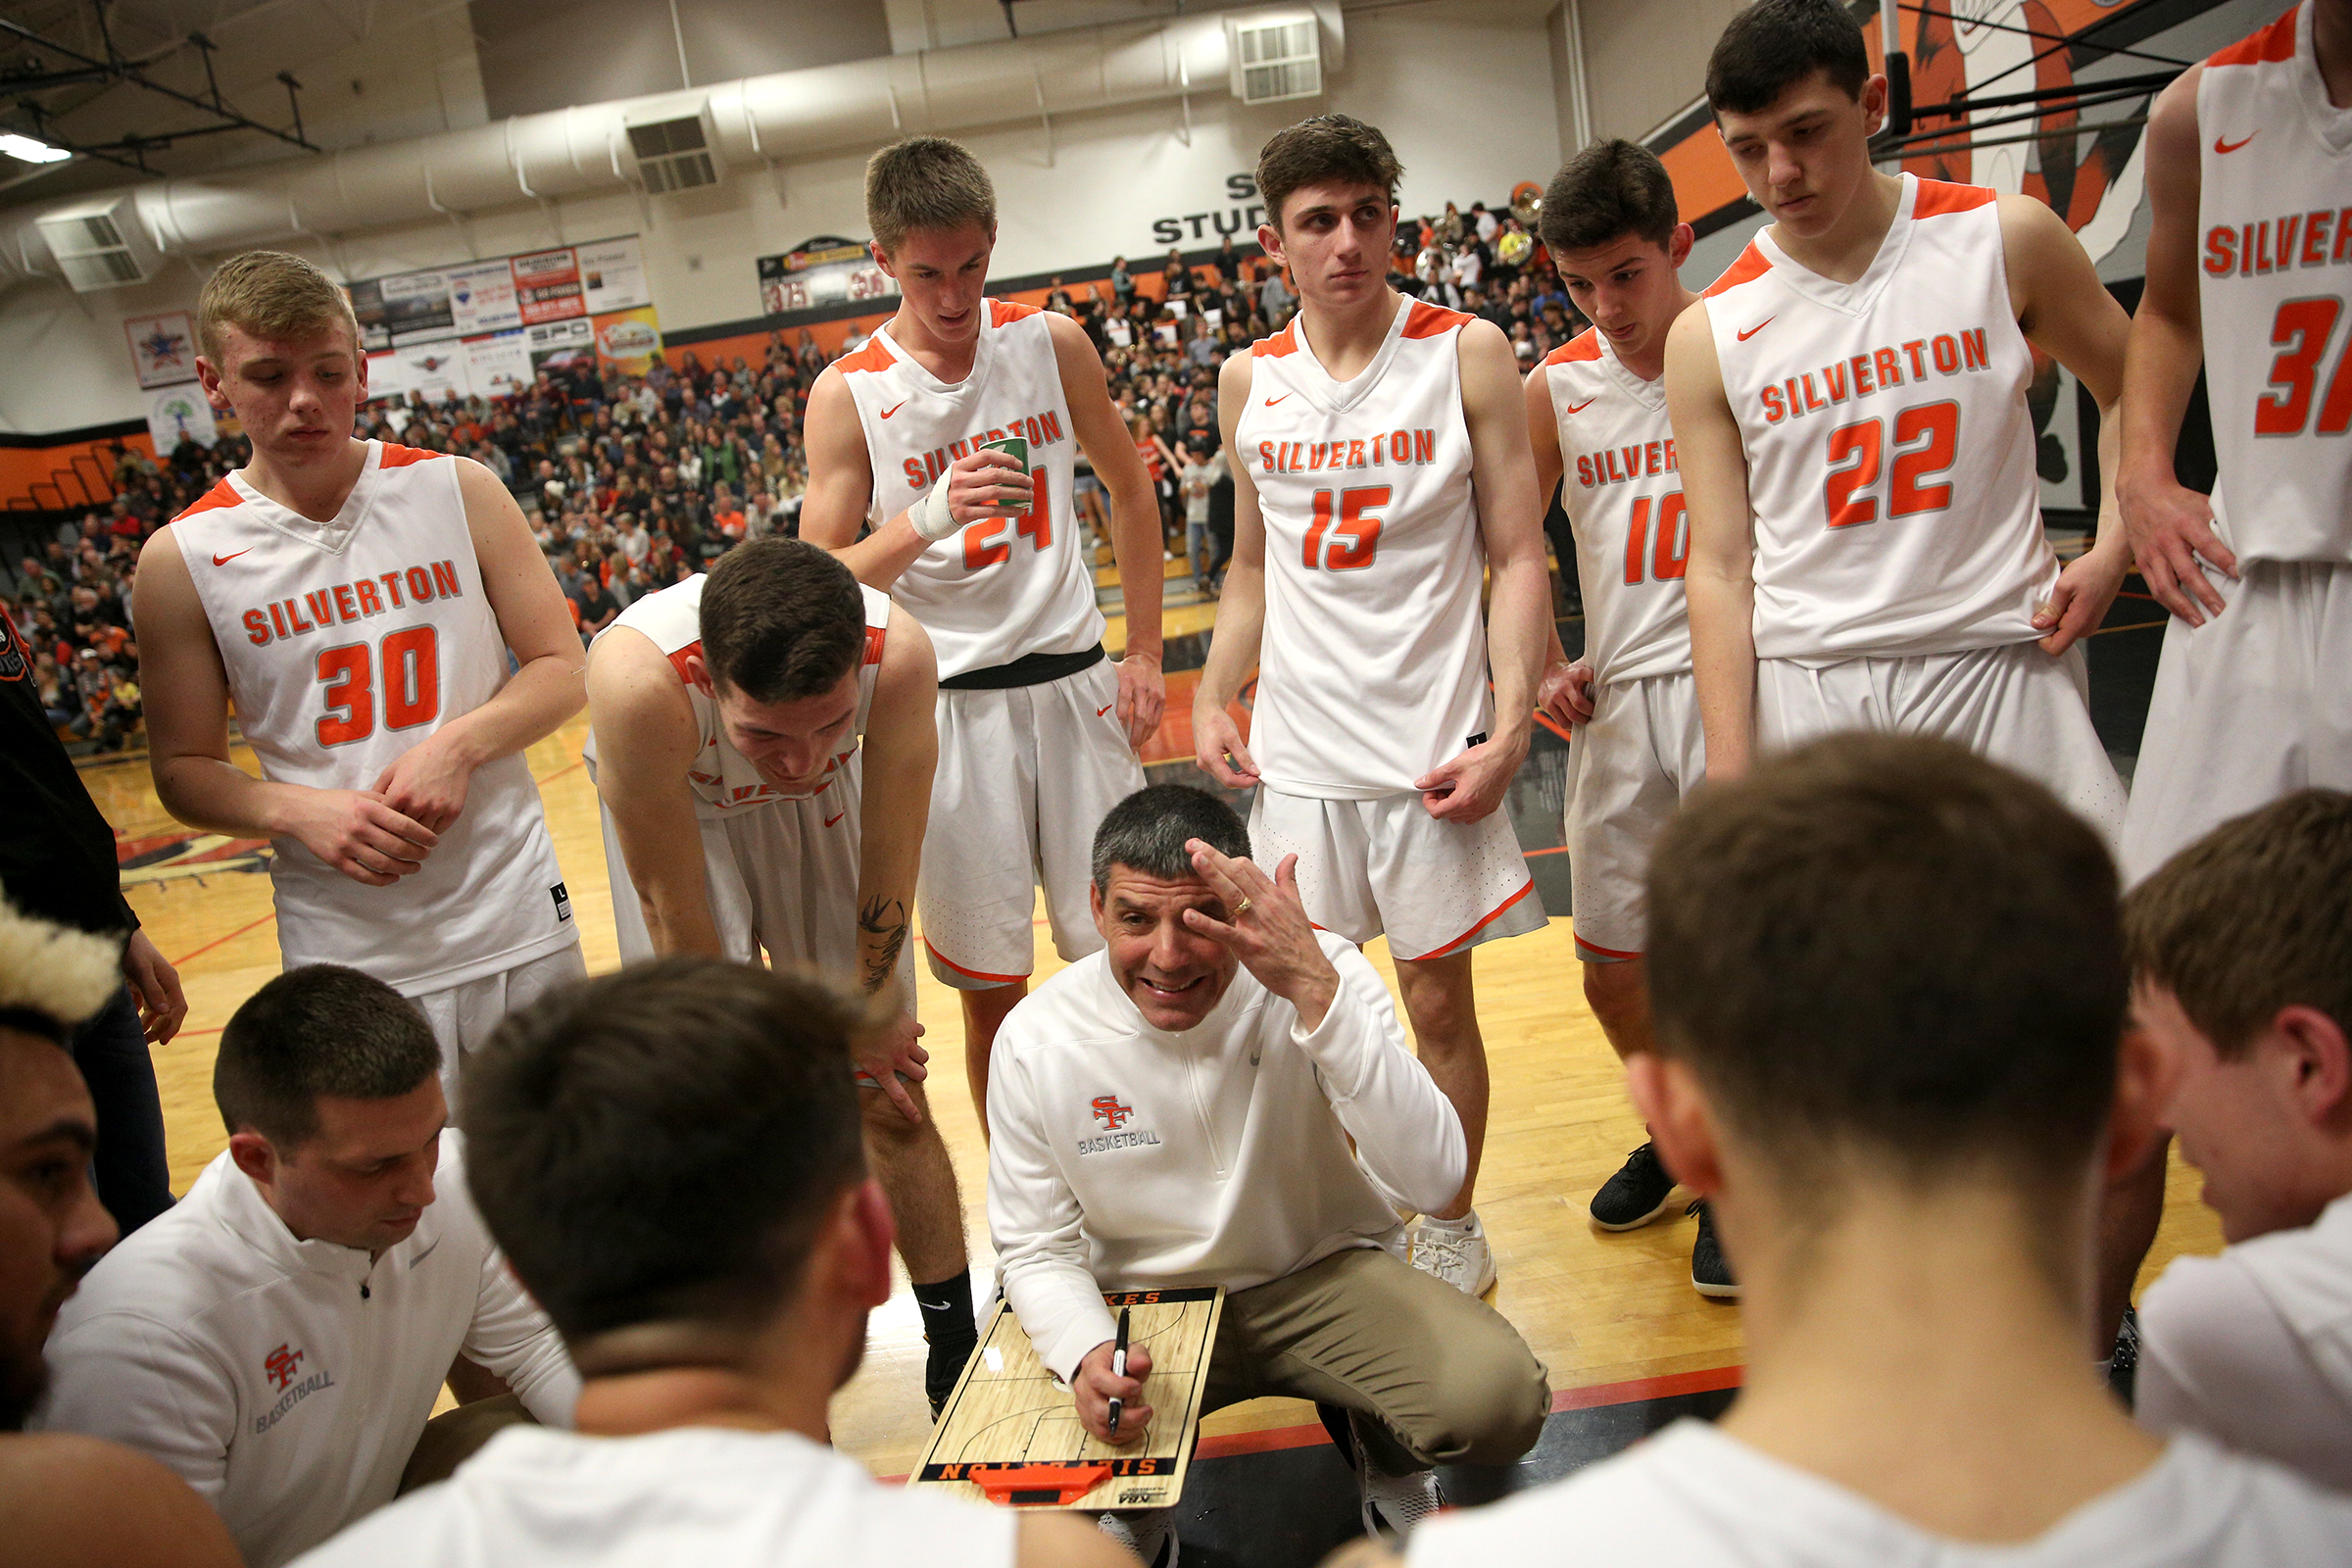 Head coach Jamie McCarty talks to his team at the bench during the Silverton vs. Springfield boys basketball OSAA state playoffs game at Silverton High School in Silverton, Oregon on Saturday, March 2, 2019.